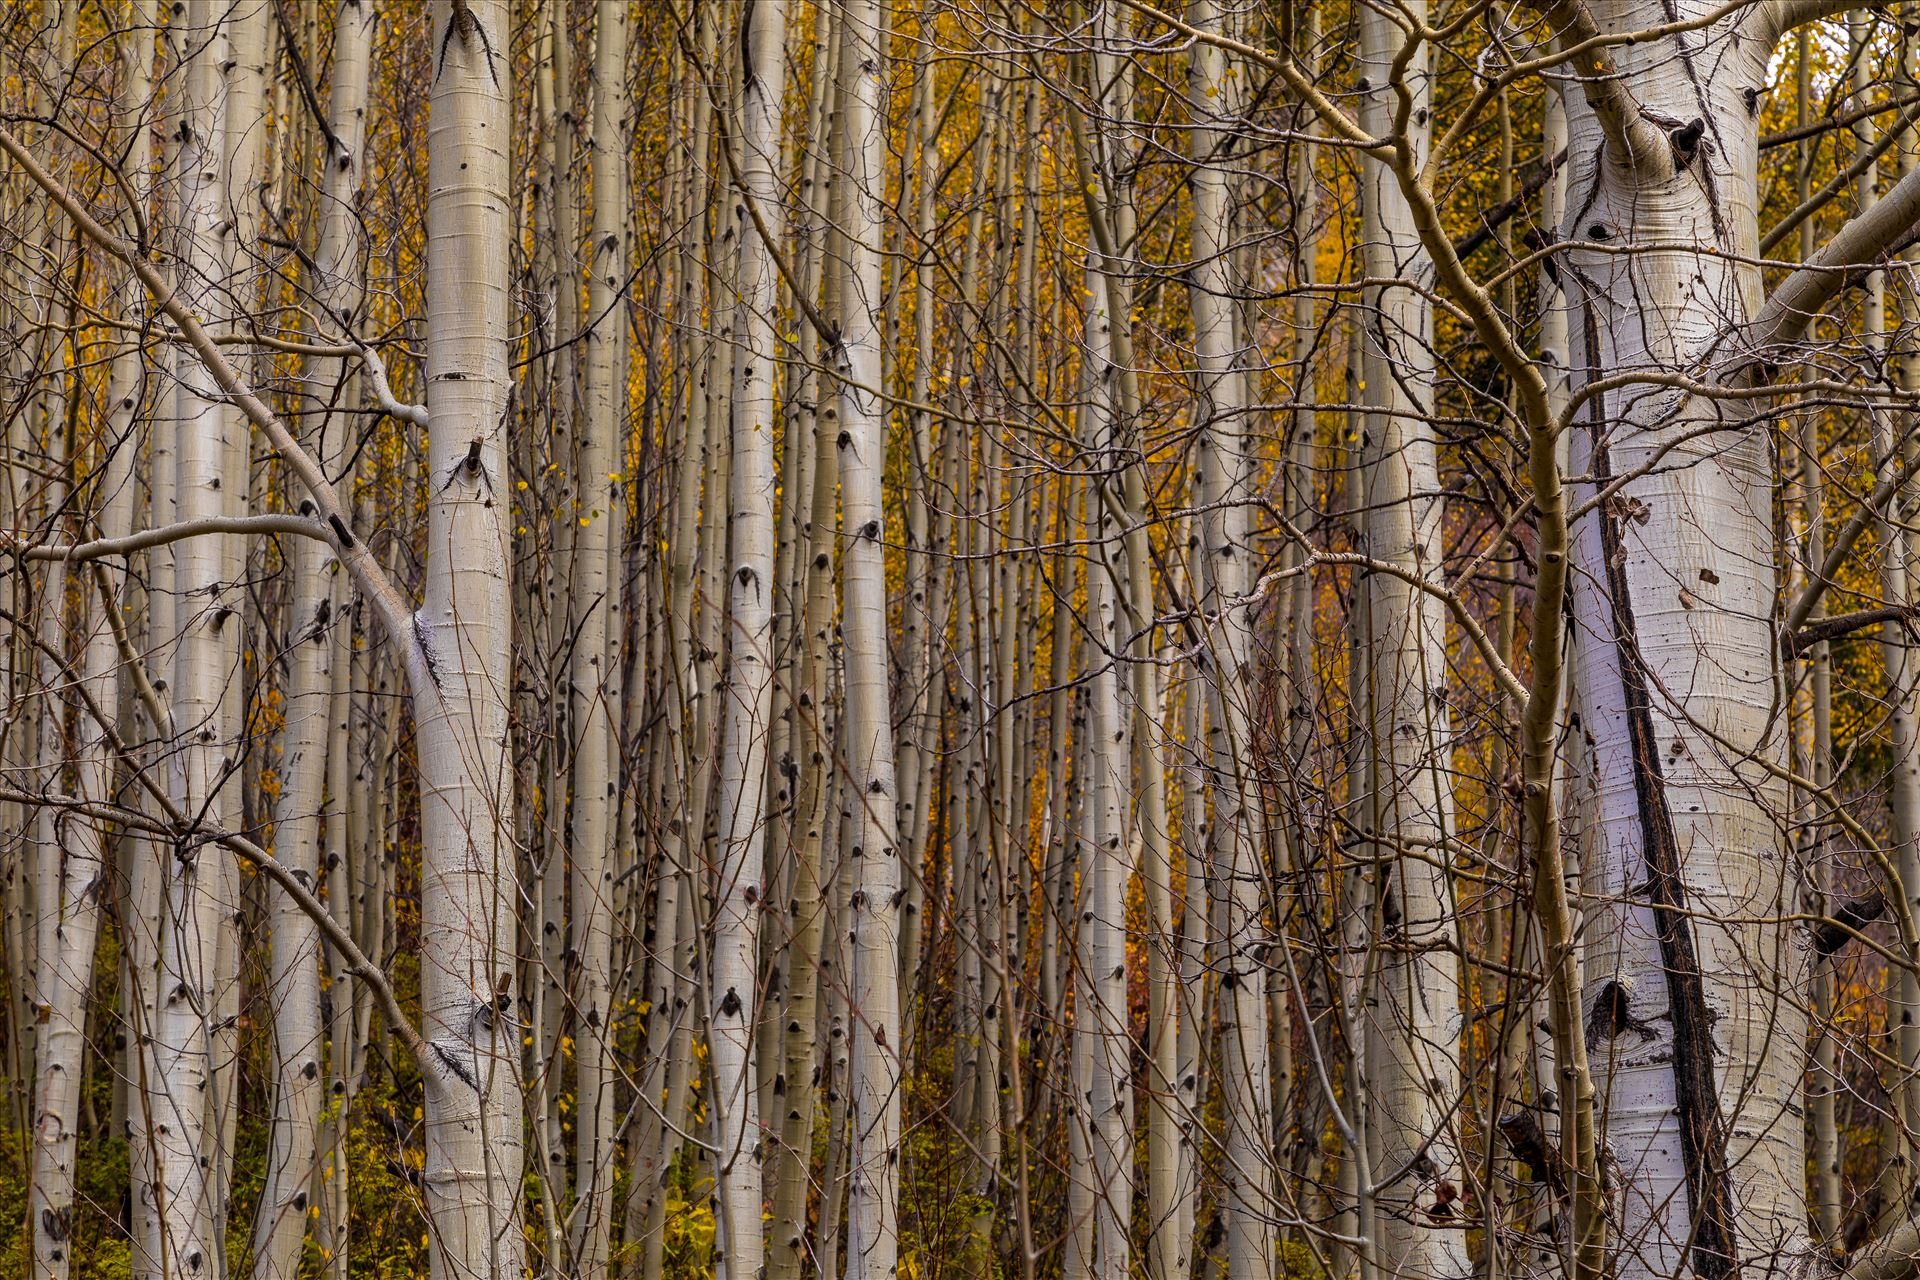 Simple Aspens - A dense grove of aspens near Marble, Colorado, in the fall. by D Scott Smith